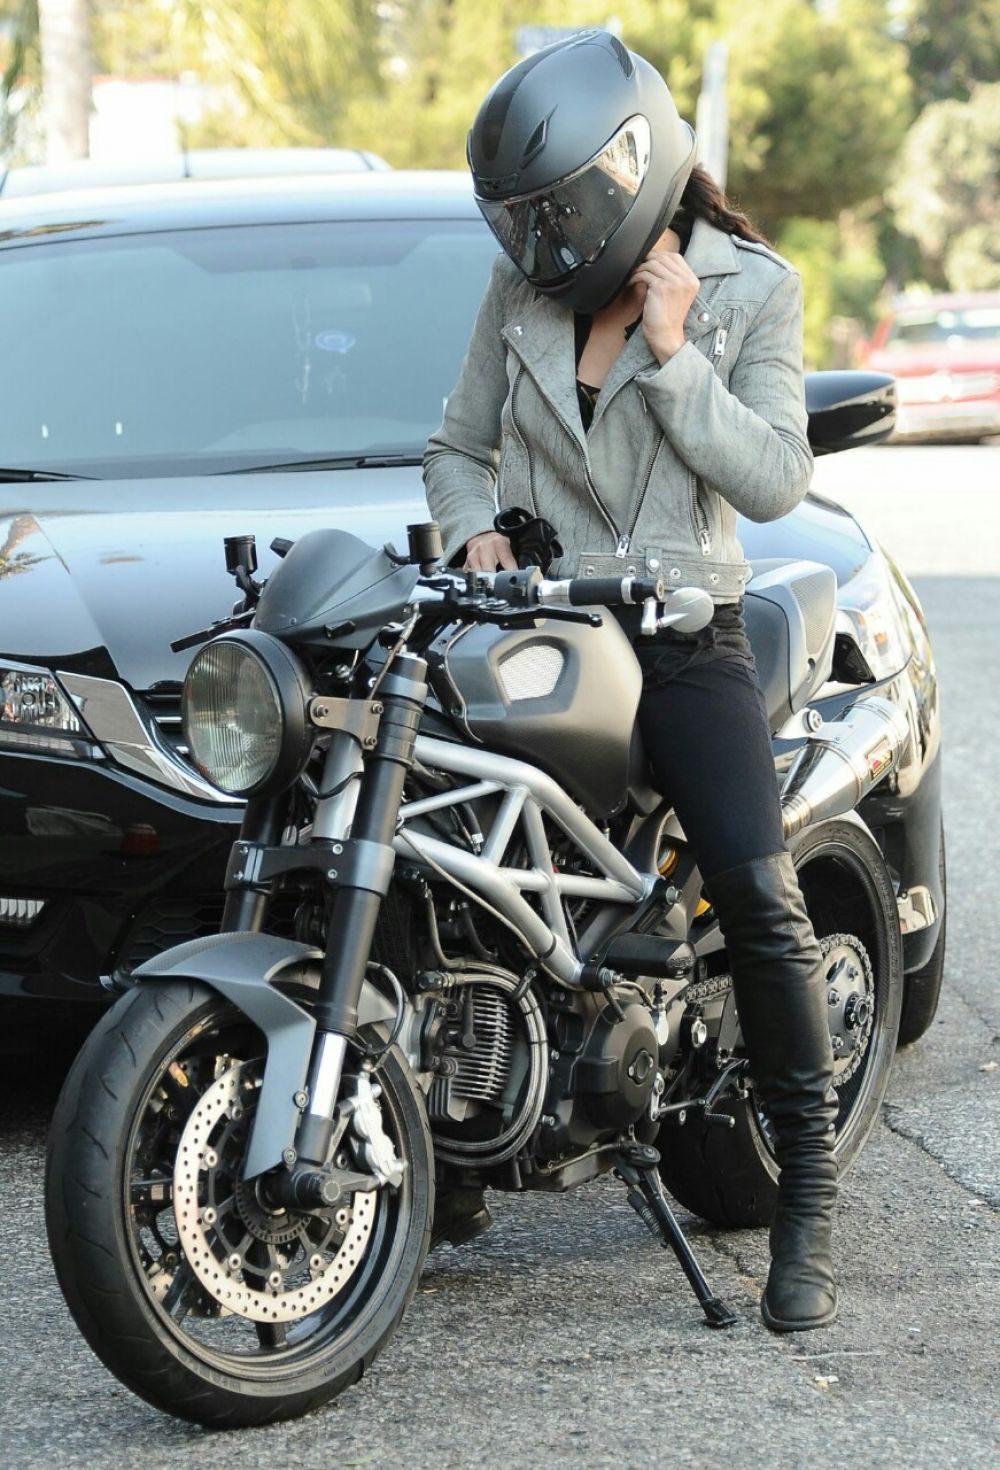 Michelle Rodriguez Letty Ortiz Fast And Furious Bike Motorcycle